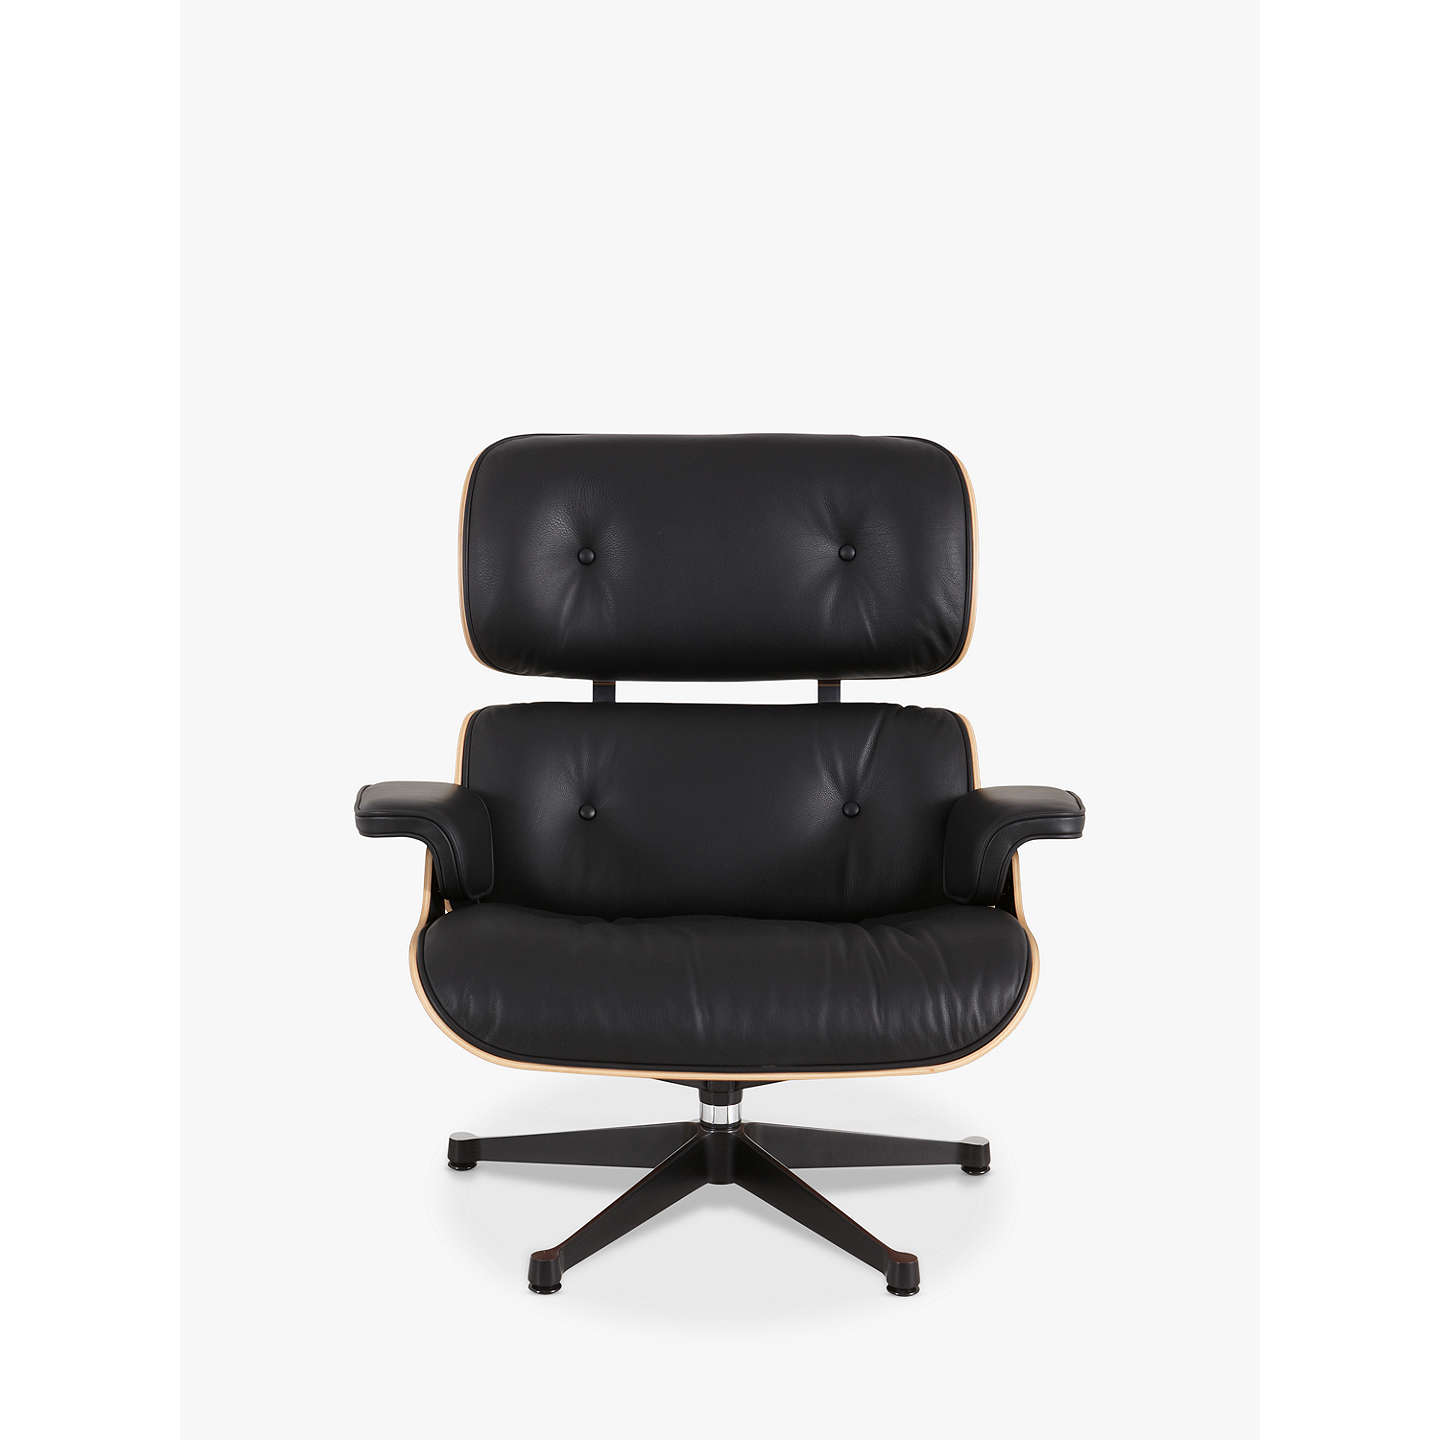 vitra eames lounge armchair at john lewis. Black Bedroom Furniture Sets. Home Design Ideas